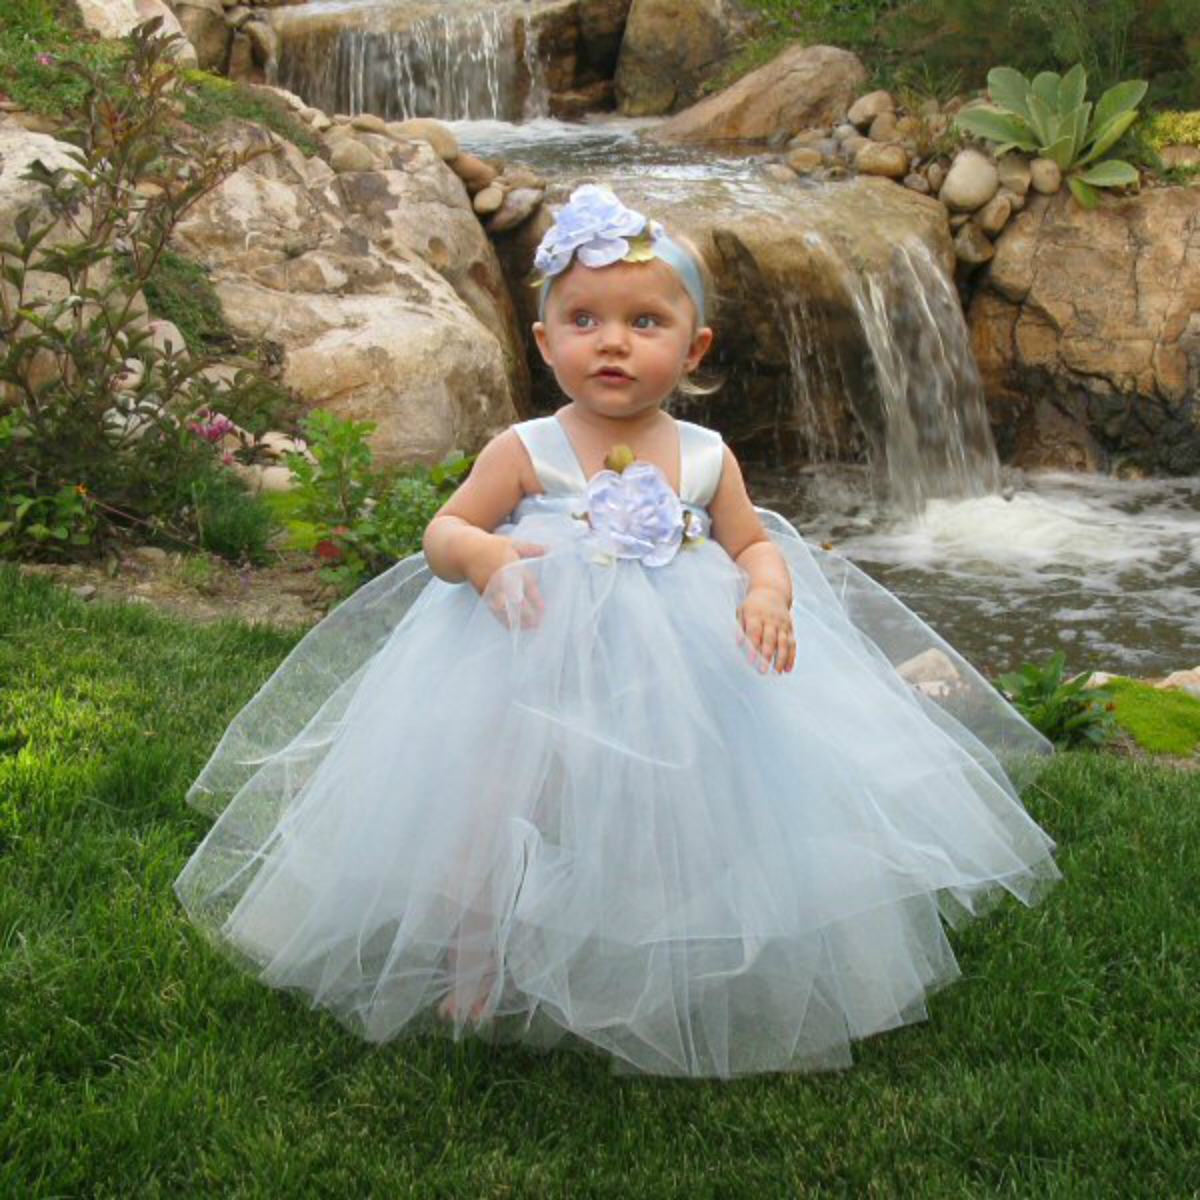 Pink Ballerina Tutu Gown for Flower Girls Dress & Headband Set ...